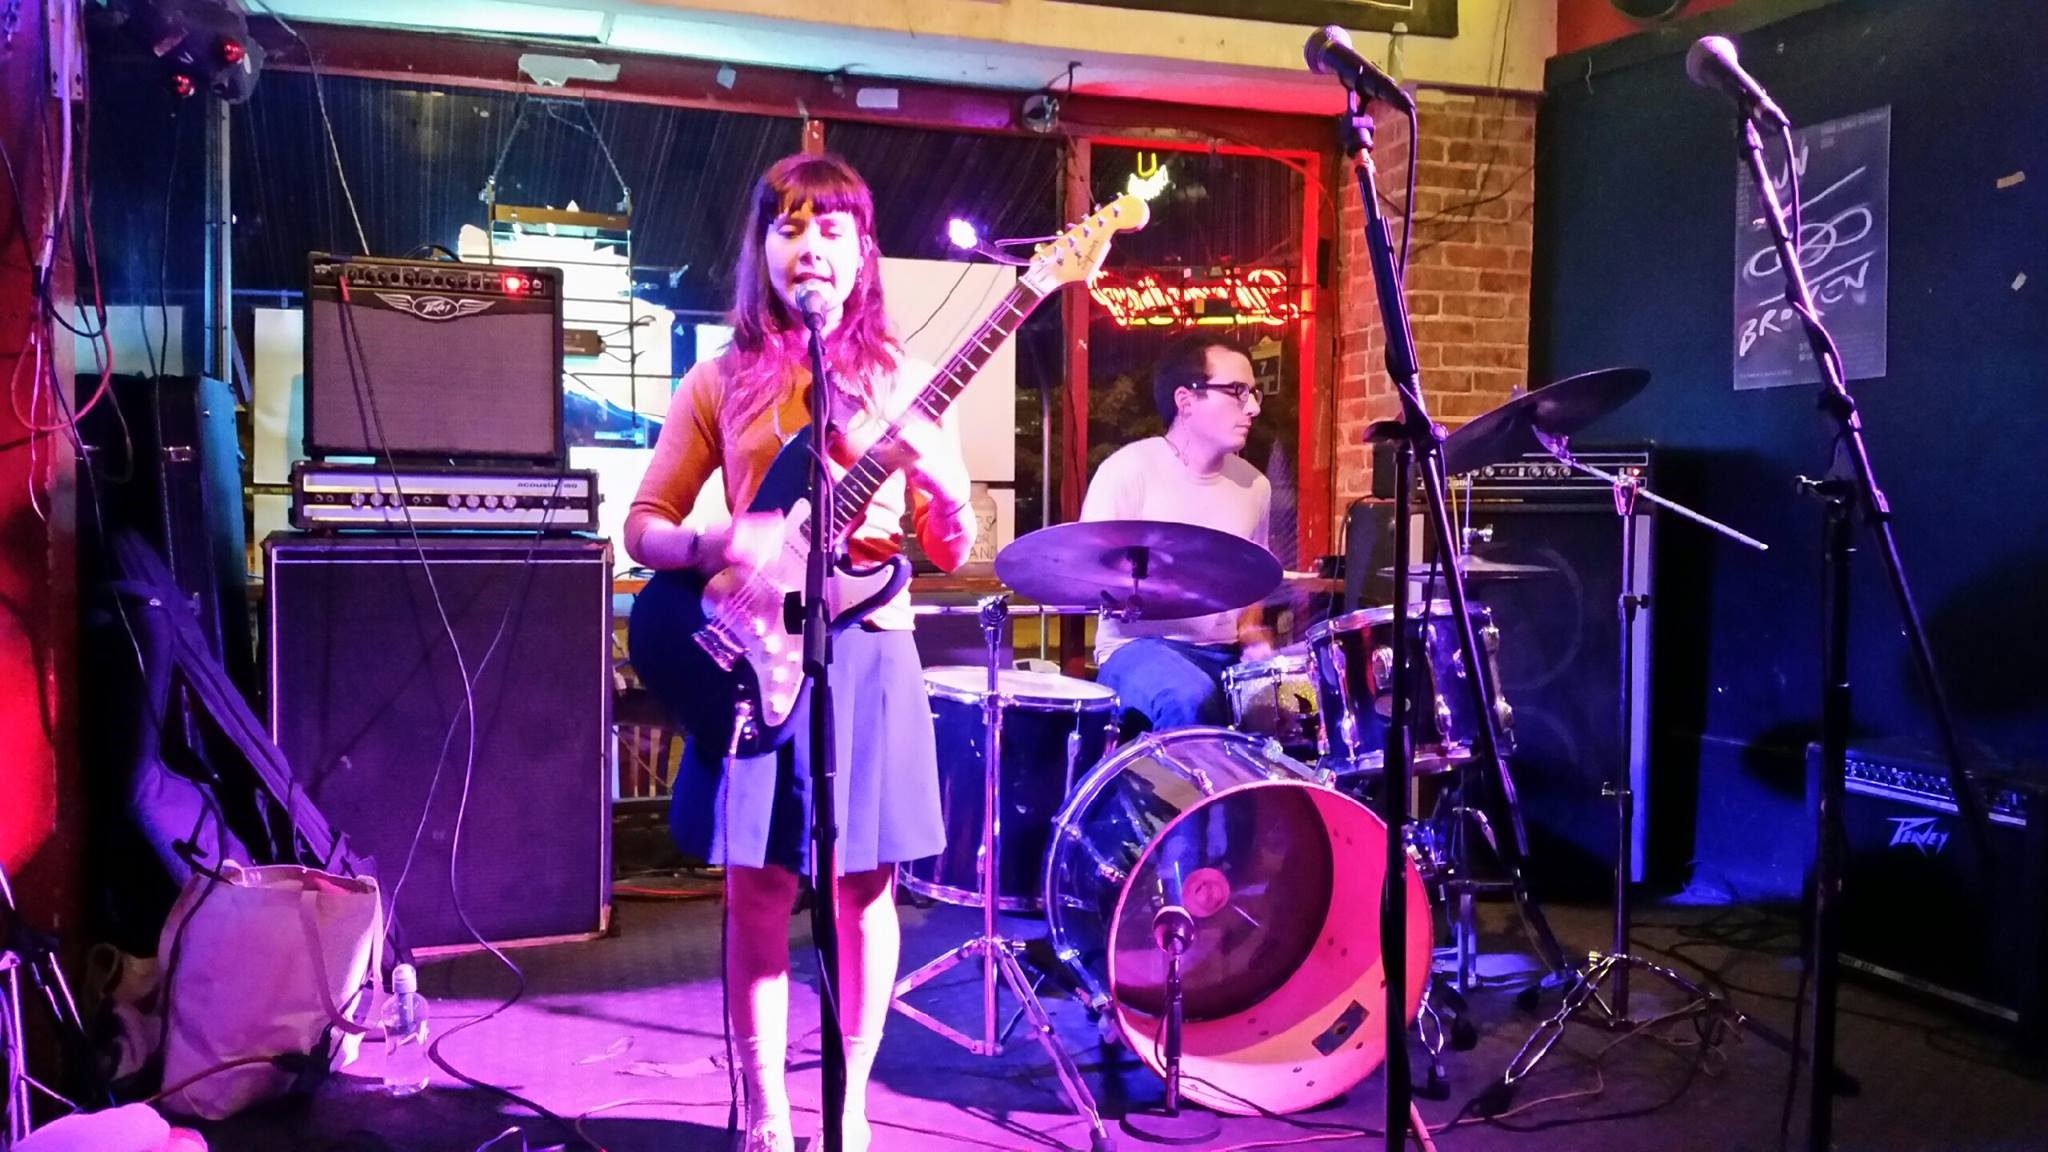 Velvet Bethany is one of the bands taking part in 'Ladies Night @ the Gypsy Parlor' on Jan. 28.